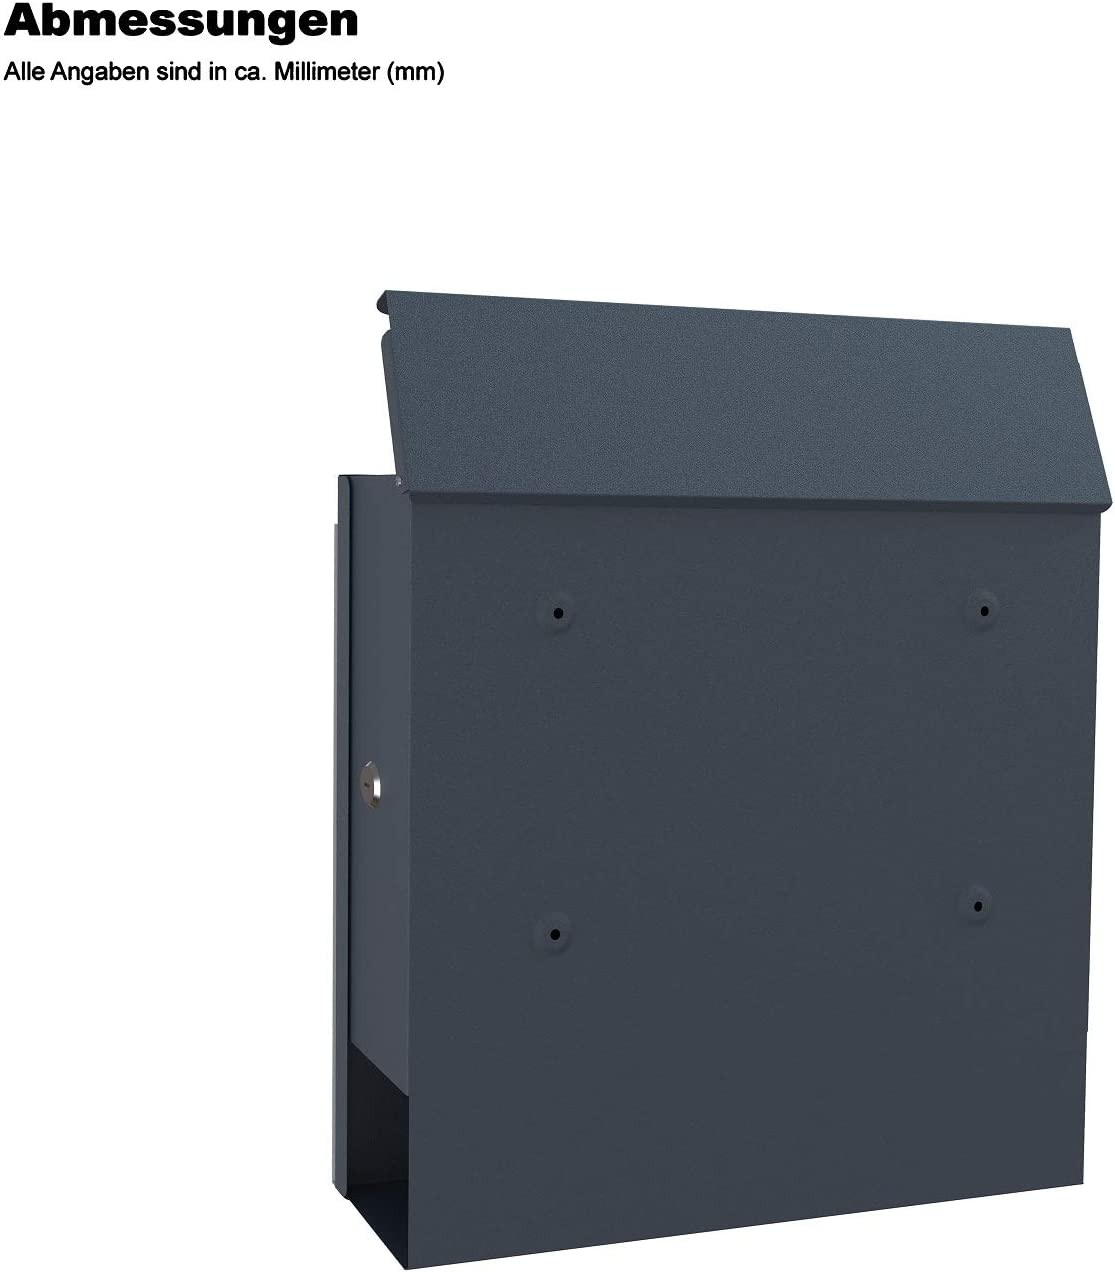 Clothink Letterbox Anthracite with Newspaper Compartment Viewing Window Lockable Powder-Coated Stainless Steel Name Plate